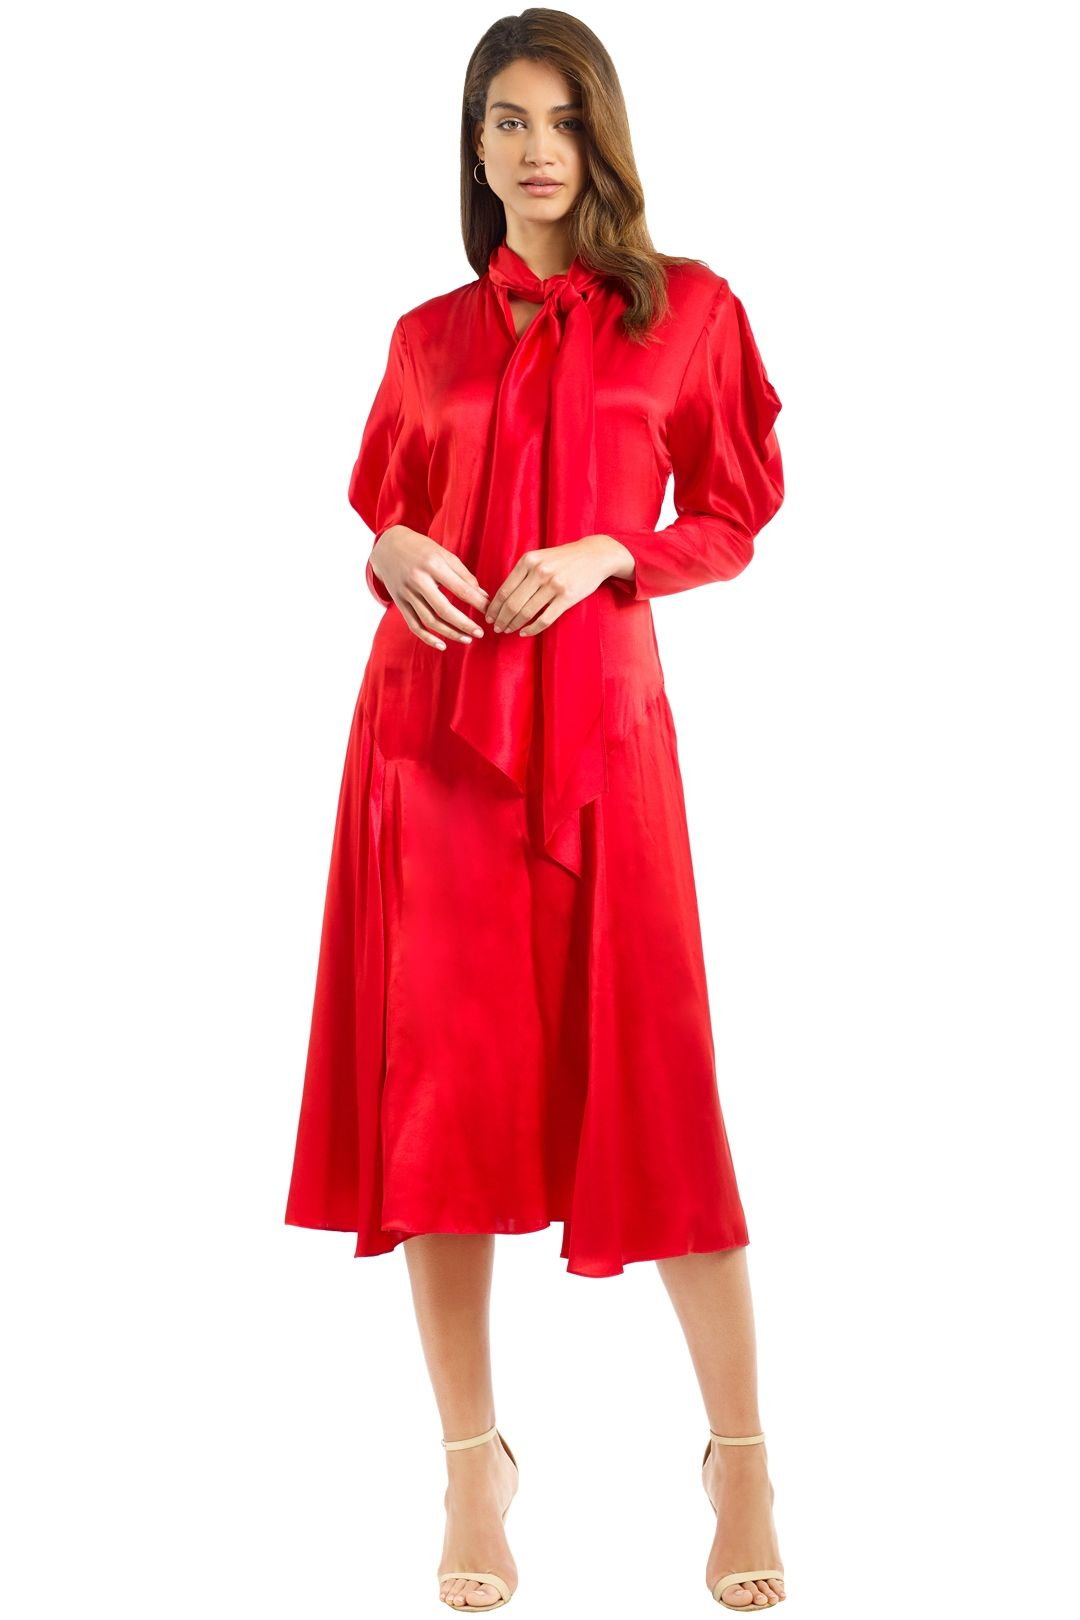 Bianca Spender - Crimson Silk Satin Liberation Dress - Red - Front